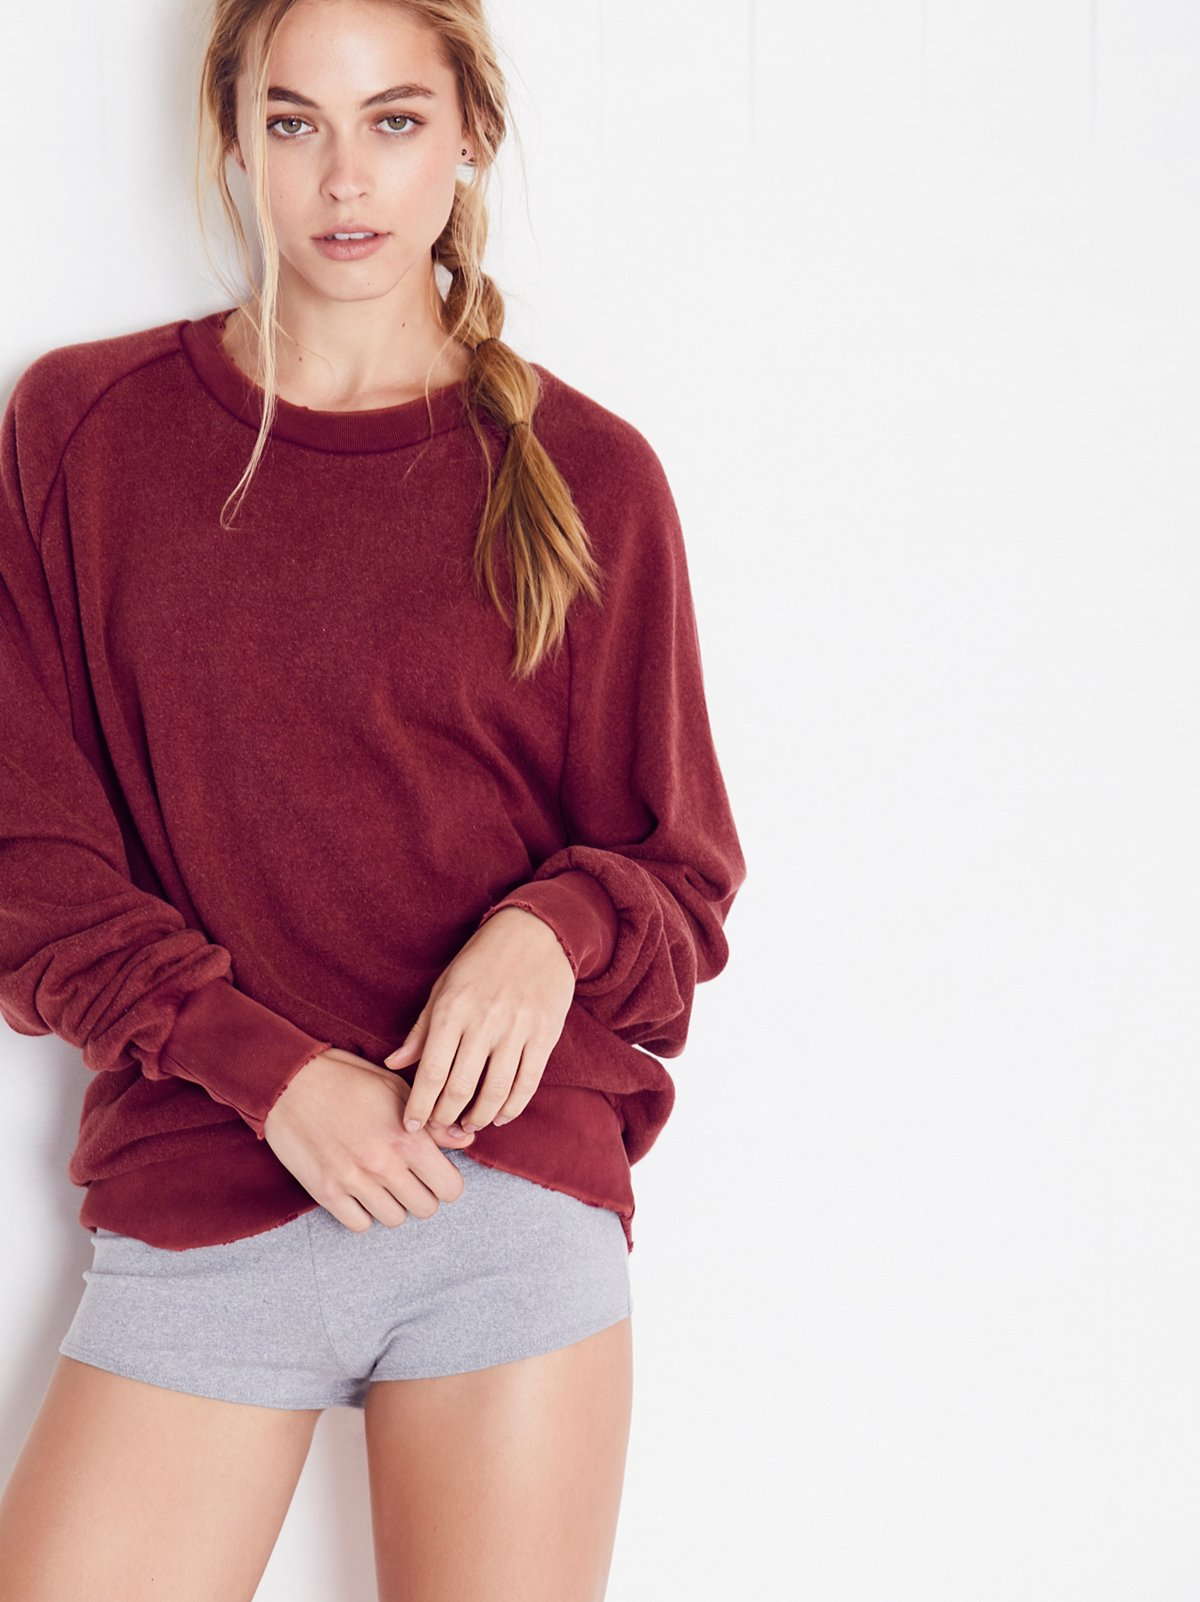 Solid Rough and Tumble Sweatshirt